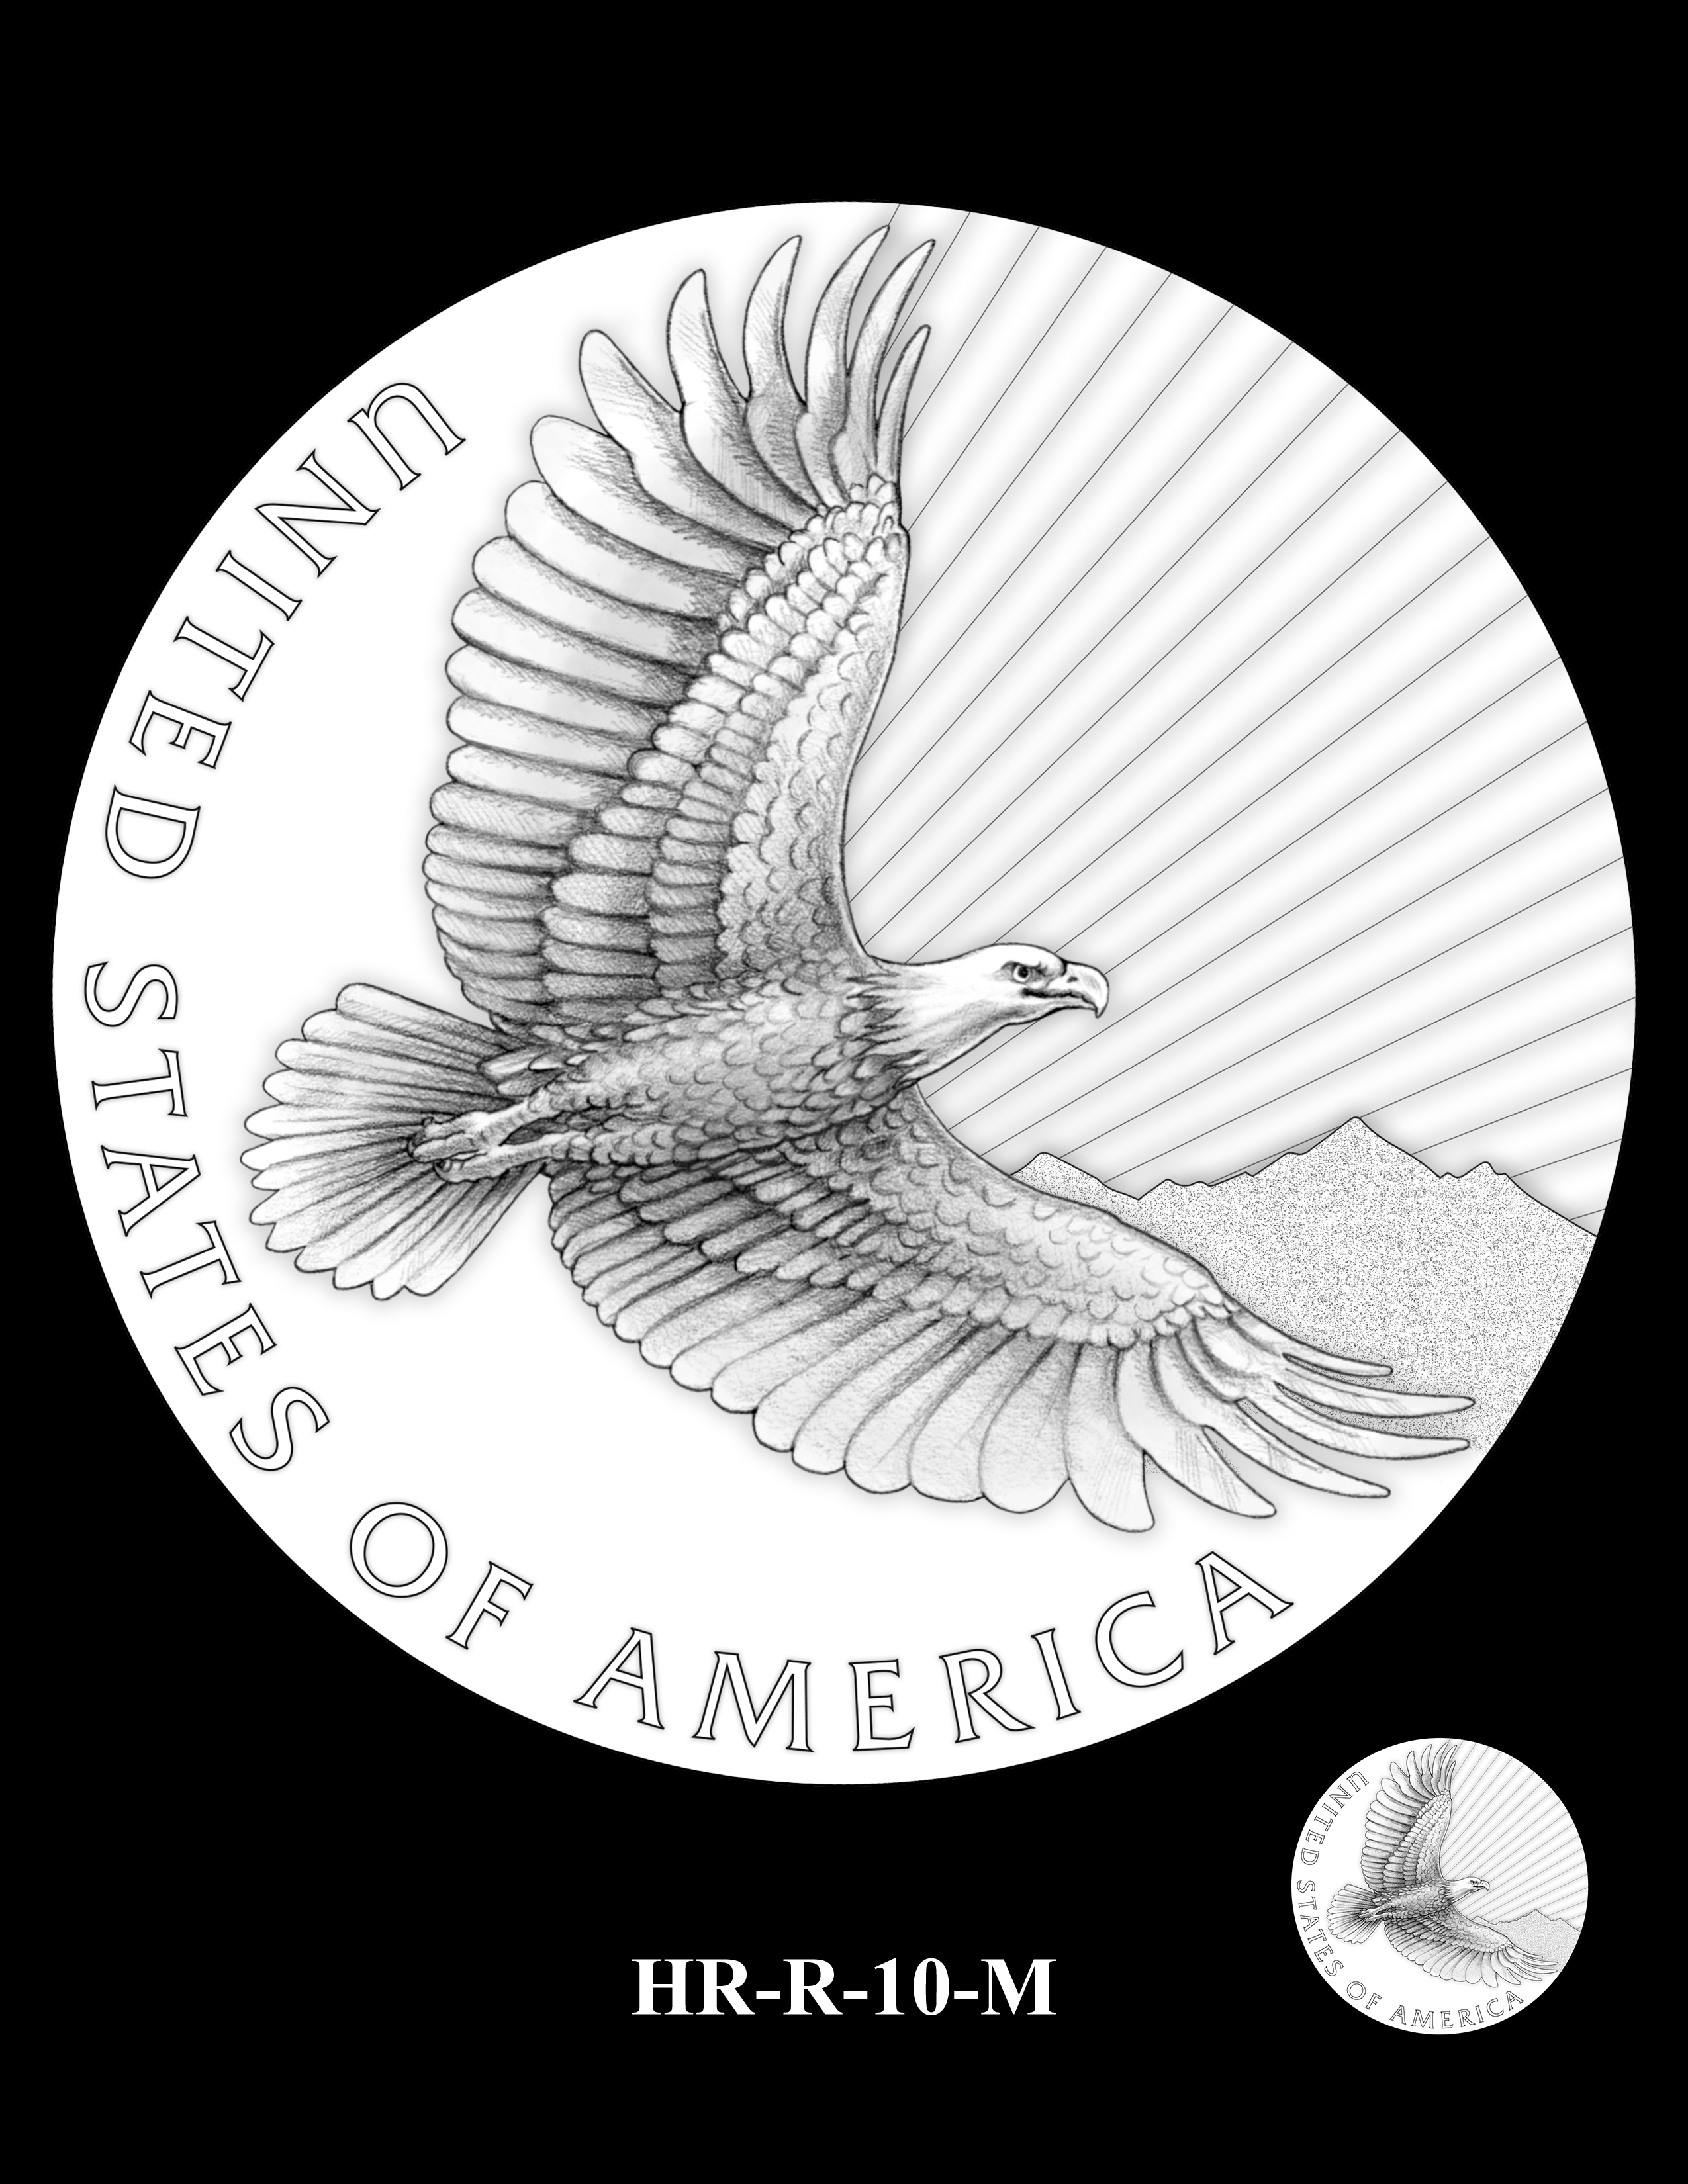 HR-R-10-M - 2017 American Liberty High Relief Gold Coin and Silver Medal Program